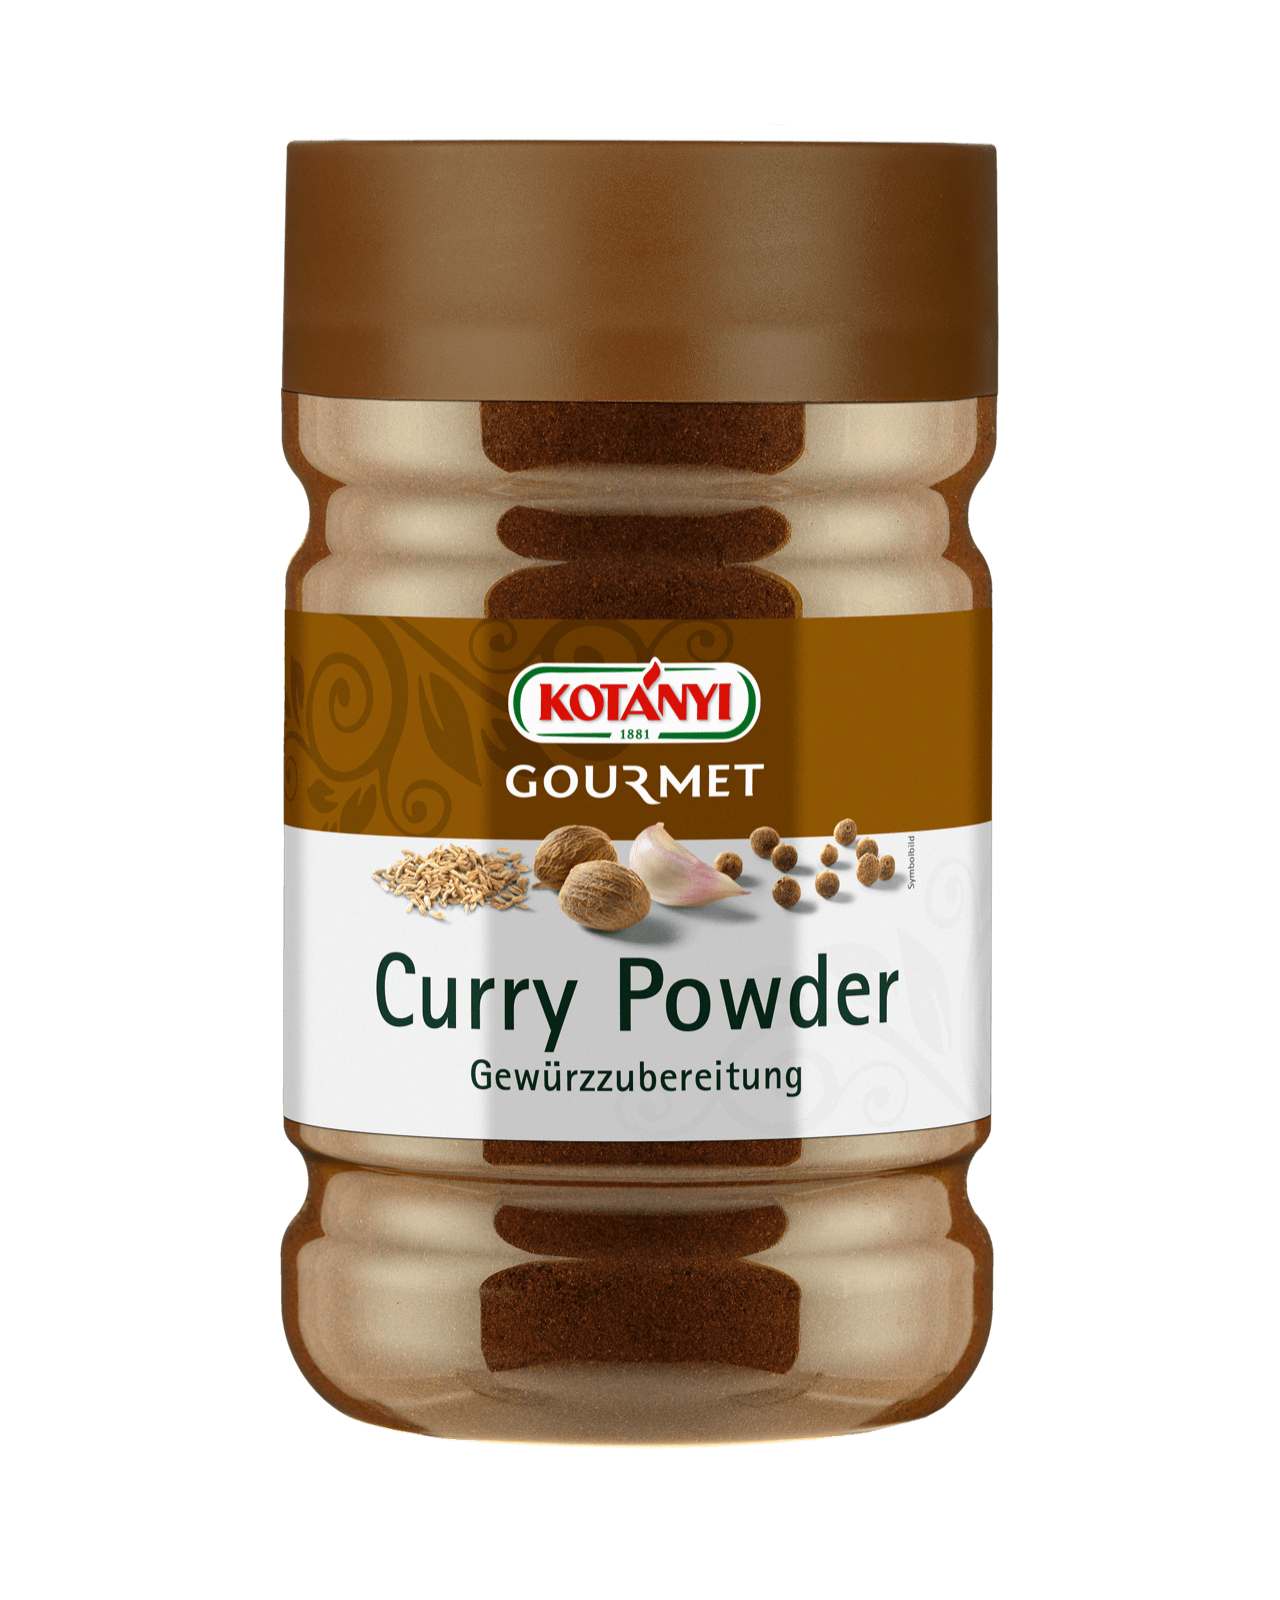 Kotányi Gourmet Curry Powder in der 1200ccm Dose